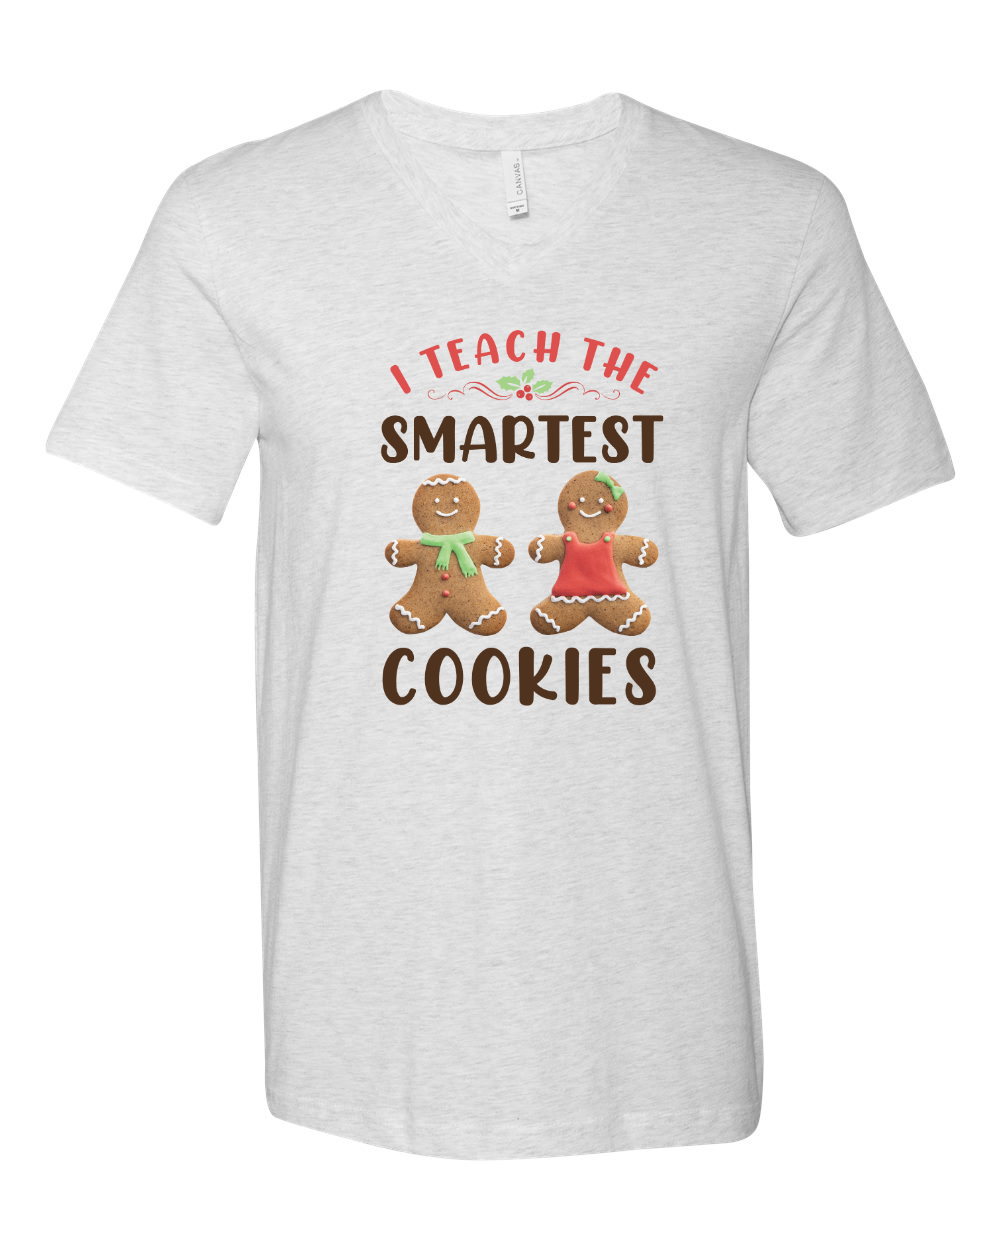 I Teach the Smartest Cookies - Vneck